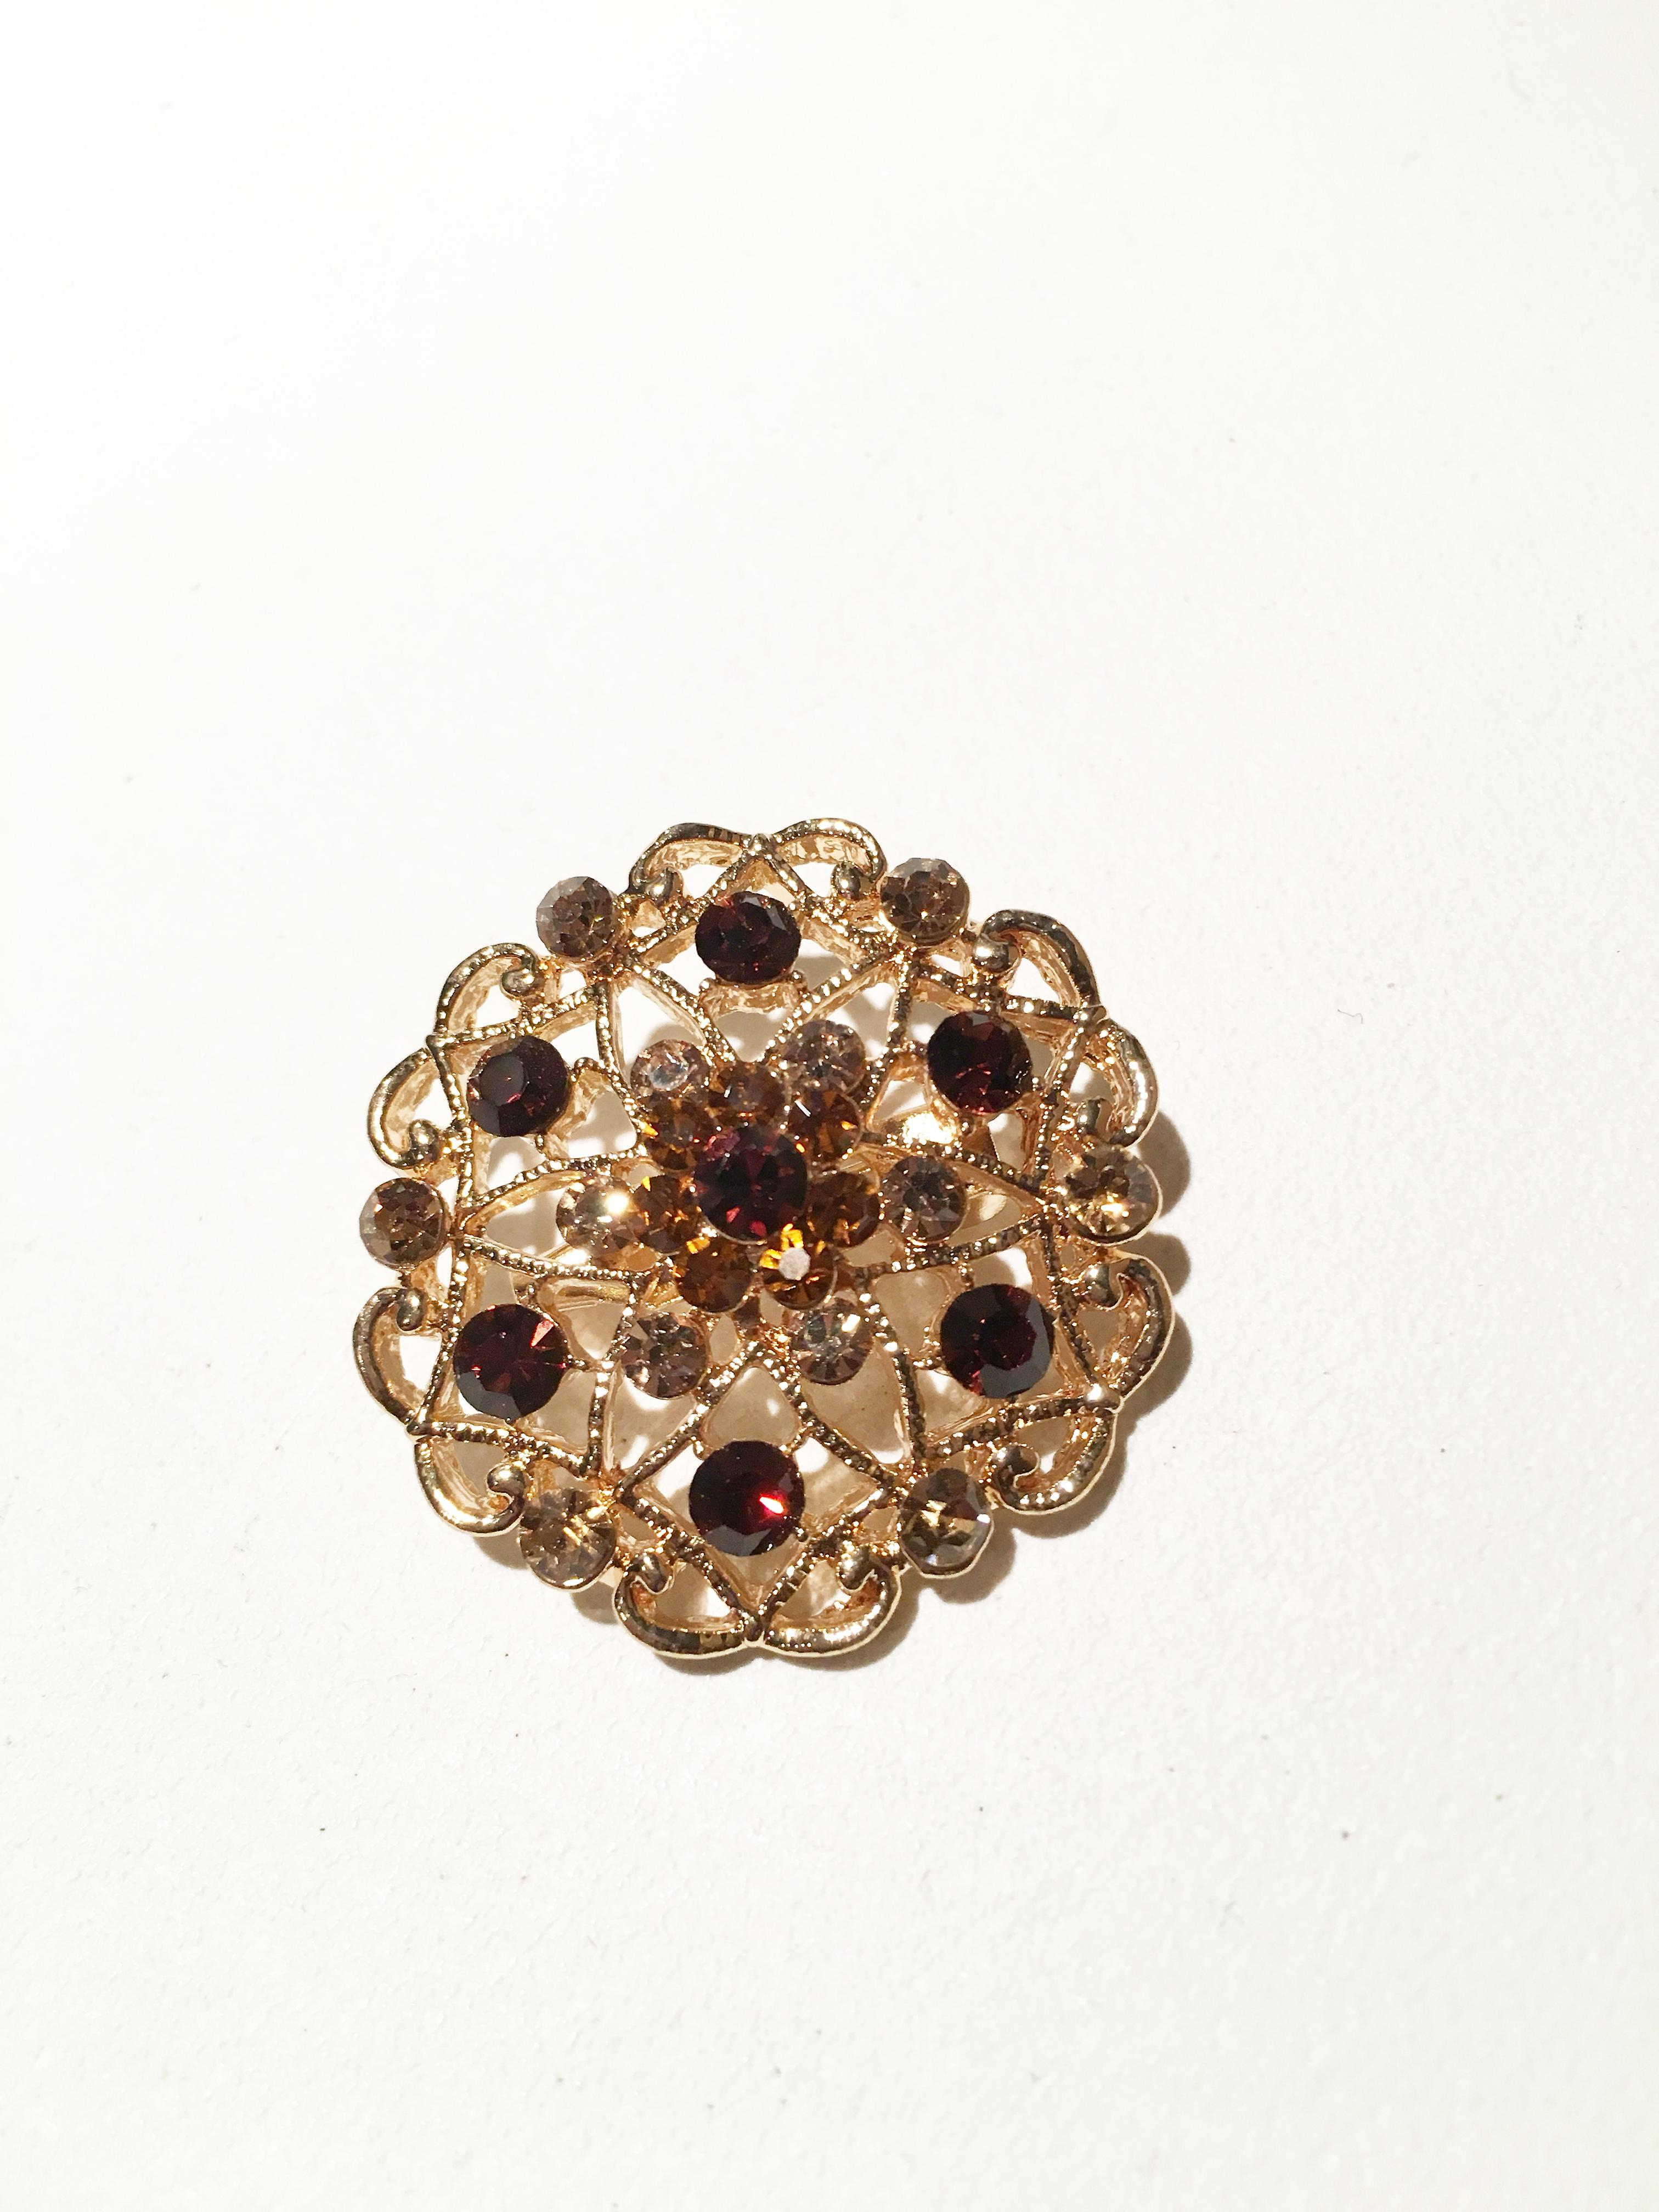 Gold and antique Brooch